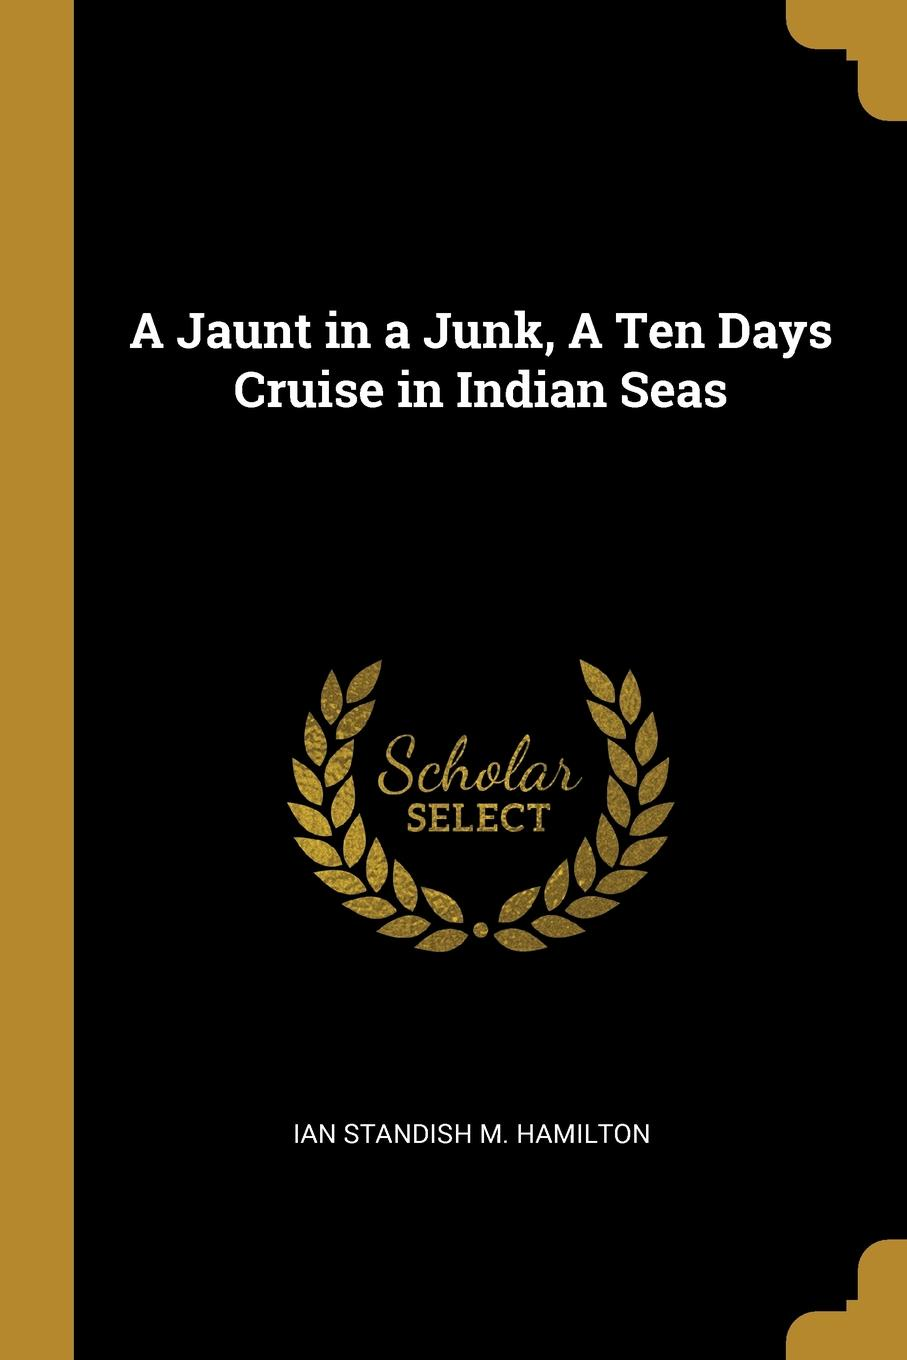 Ian Standish M. Hamilton. A Jaunt in a Junk, A Ten Days Cruise in Indian Seas